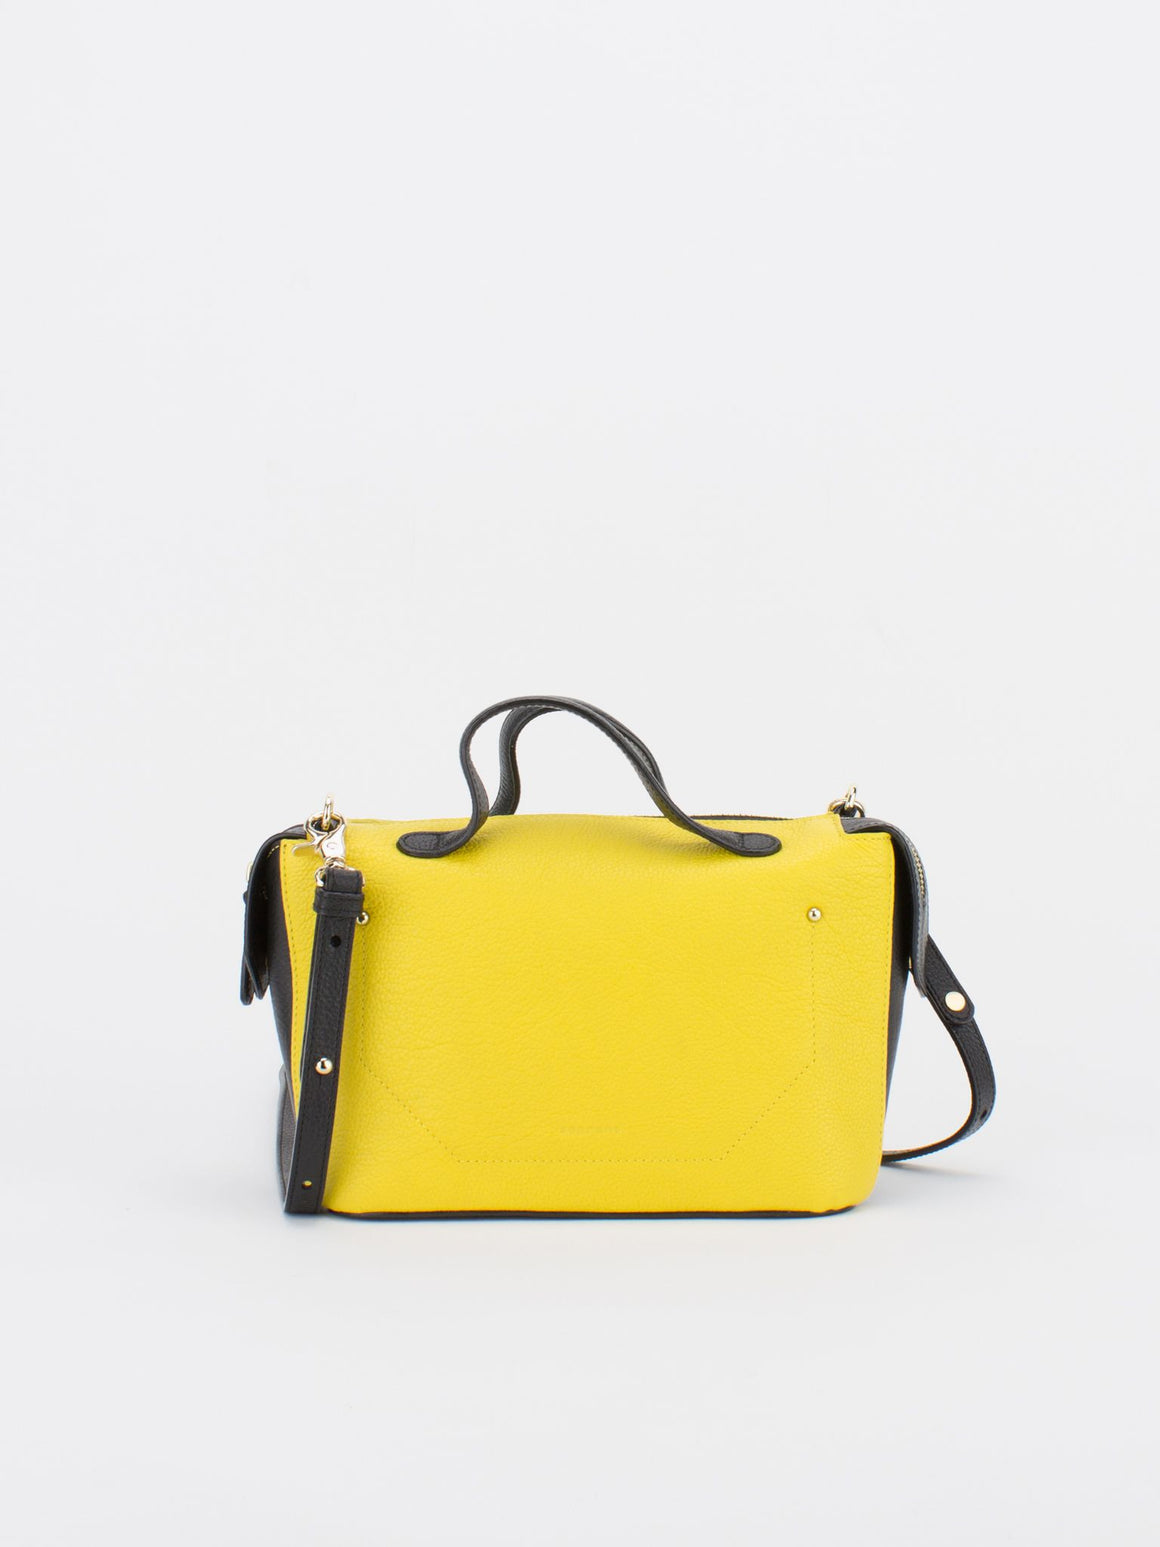 ROBIN Colour Blocking Leather Satchel - Lemon